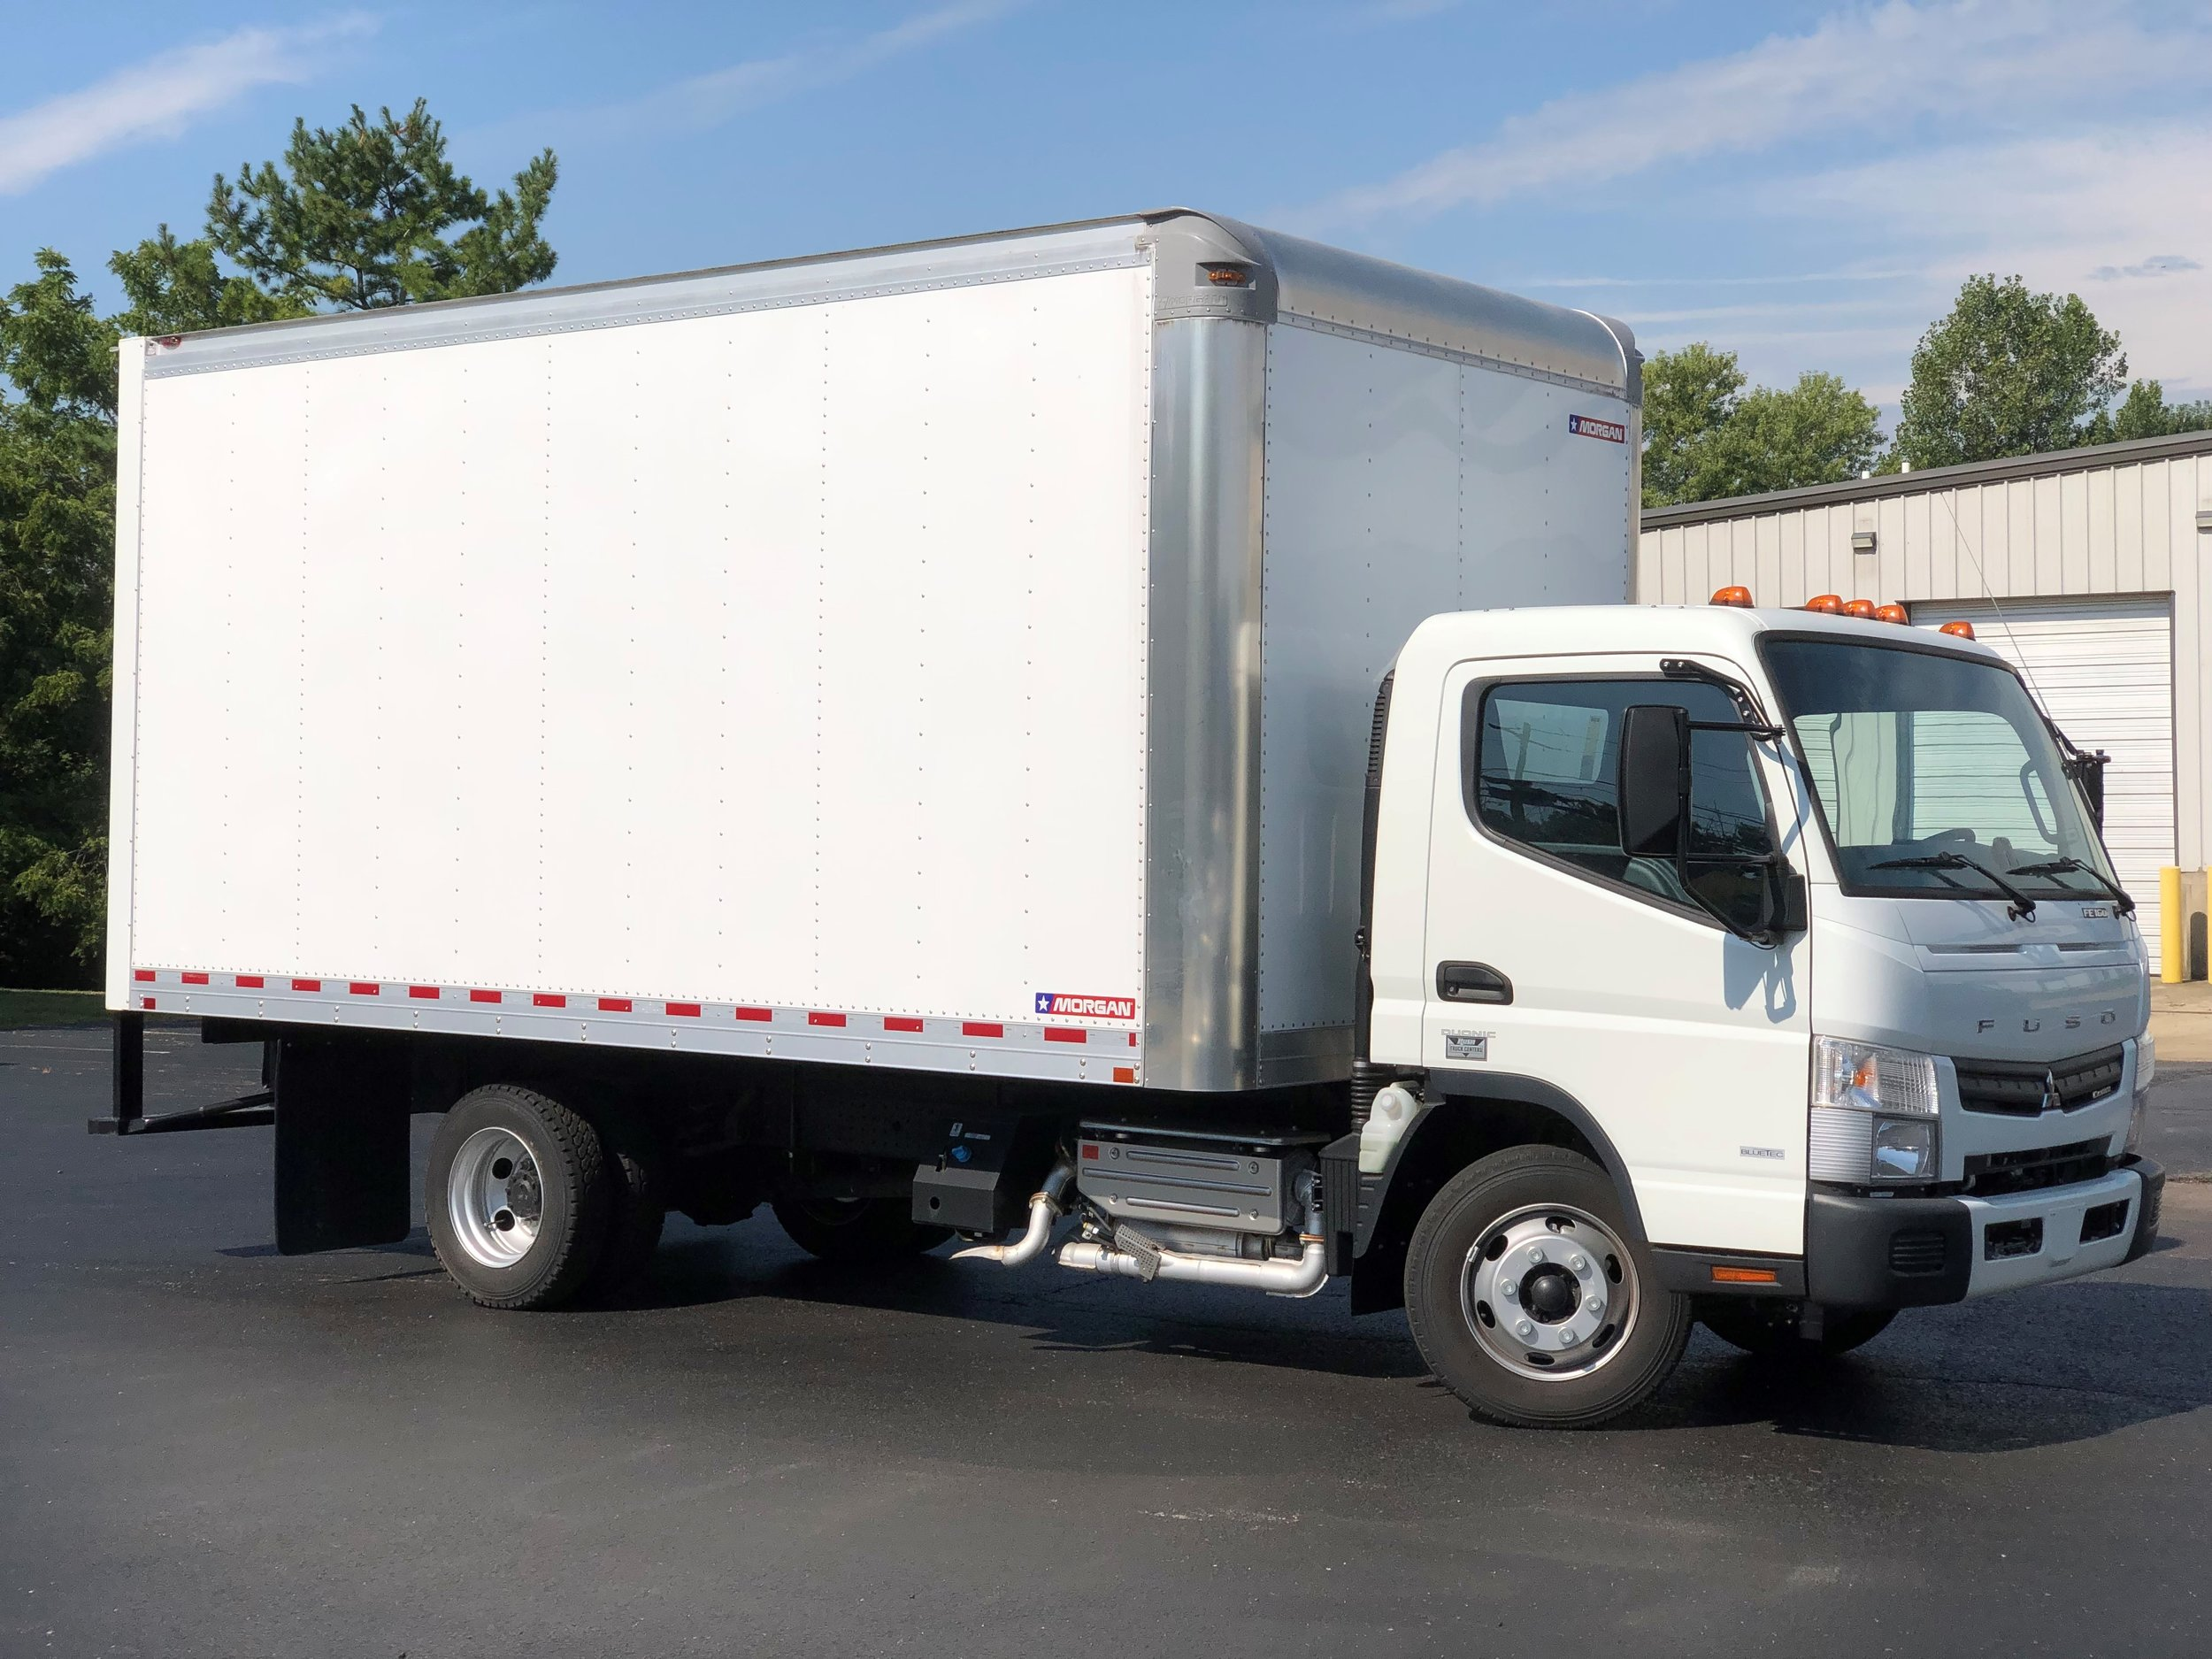 DELIVERY ACROSS THE TRi-state area -